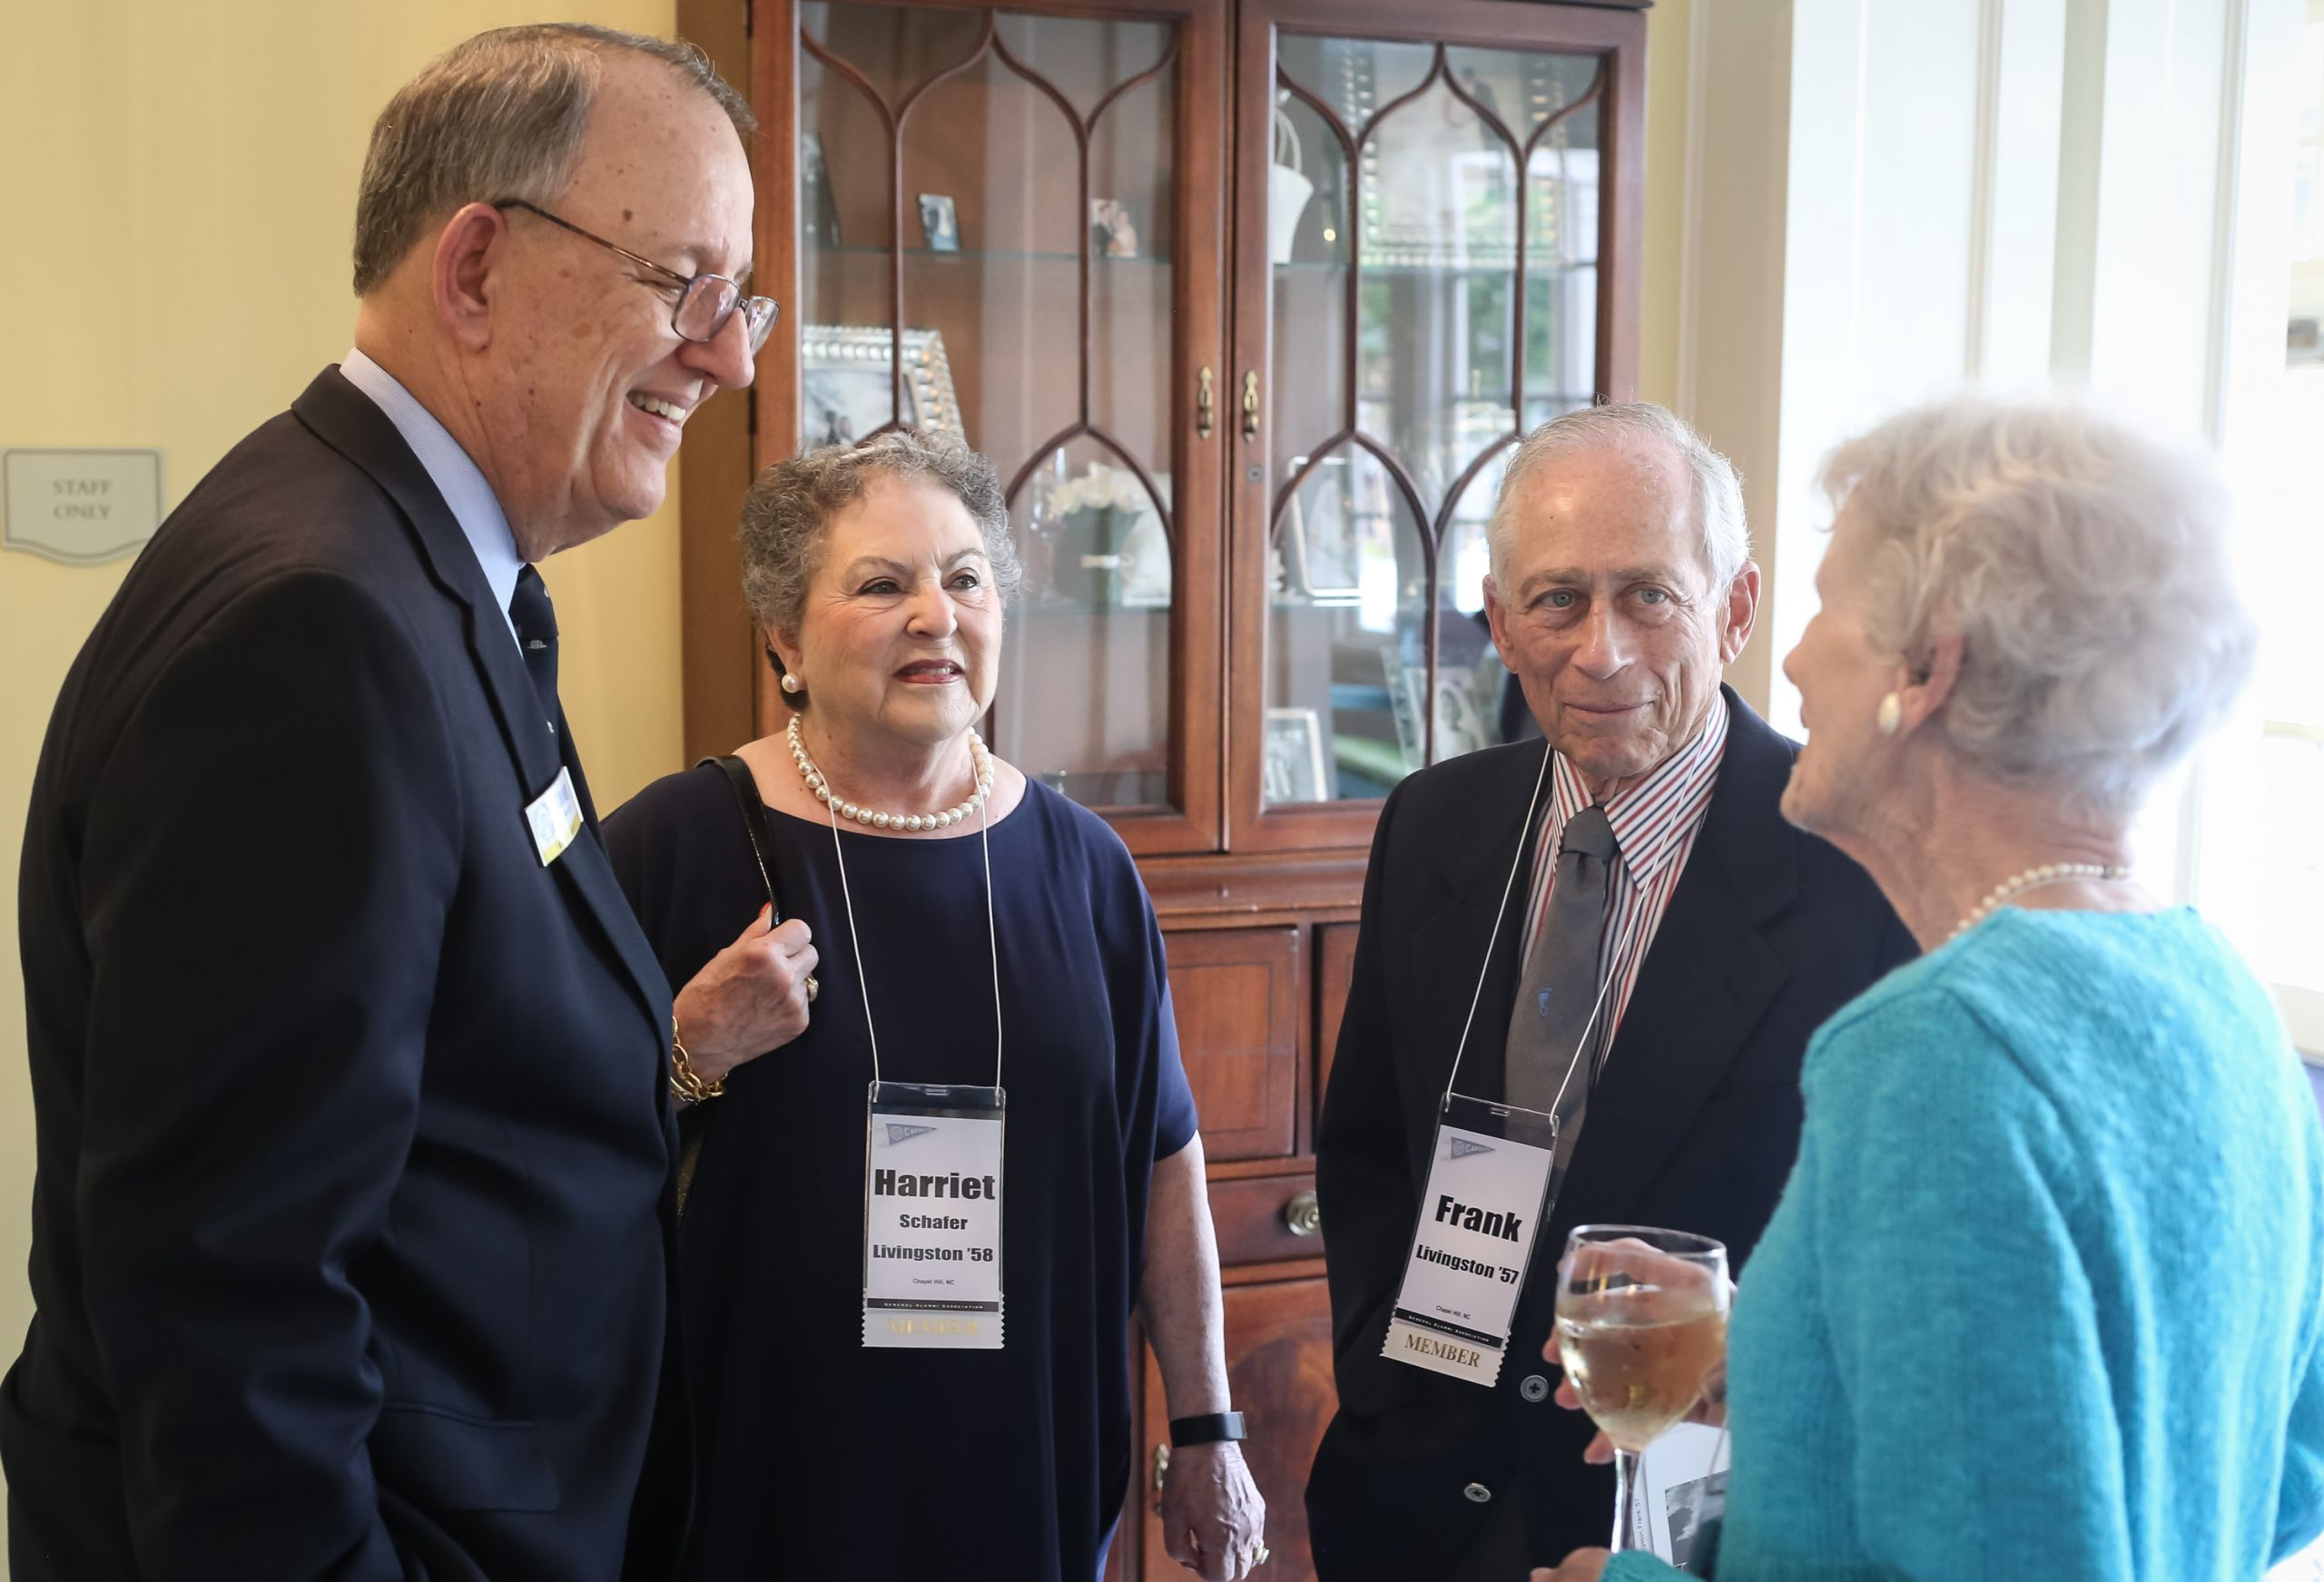 Frank Livingston '57 and his wife, Harriet Schafer Livingston '58, chat with GAA President Doug Dibbert '70 and another guest at the class of '57 reunion. The Livingstons met as students at Carolina. (Photo by Ray Black III)